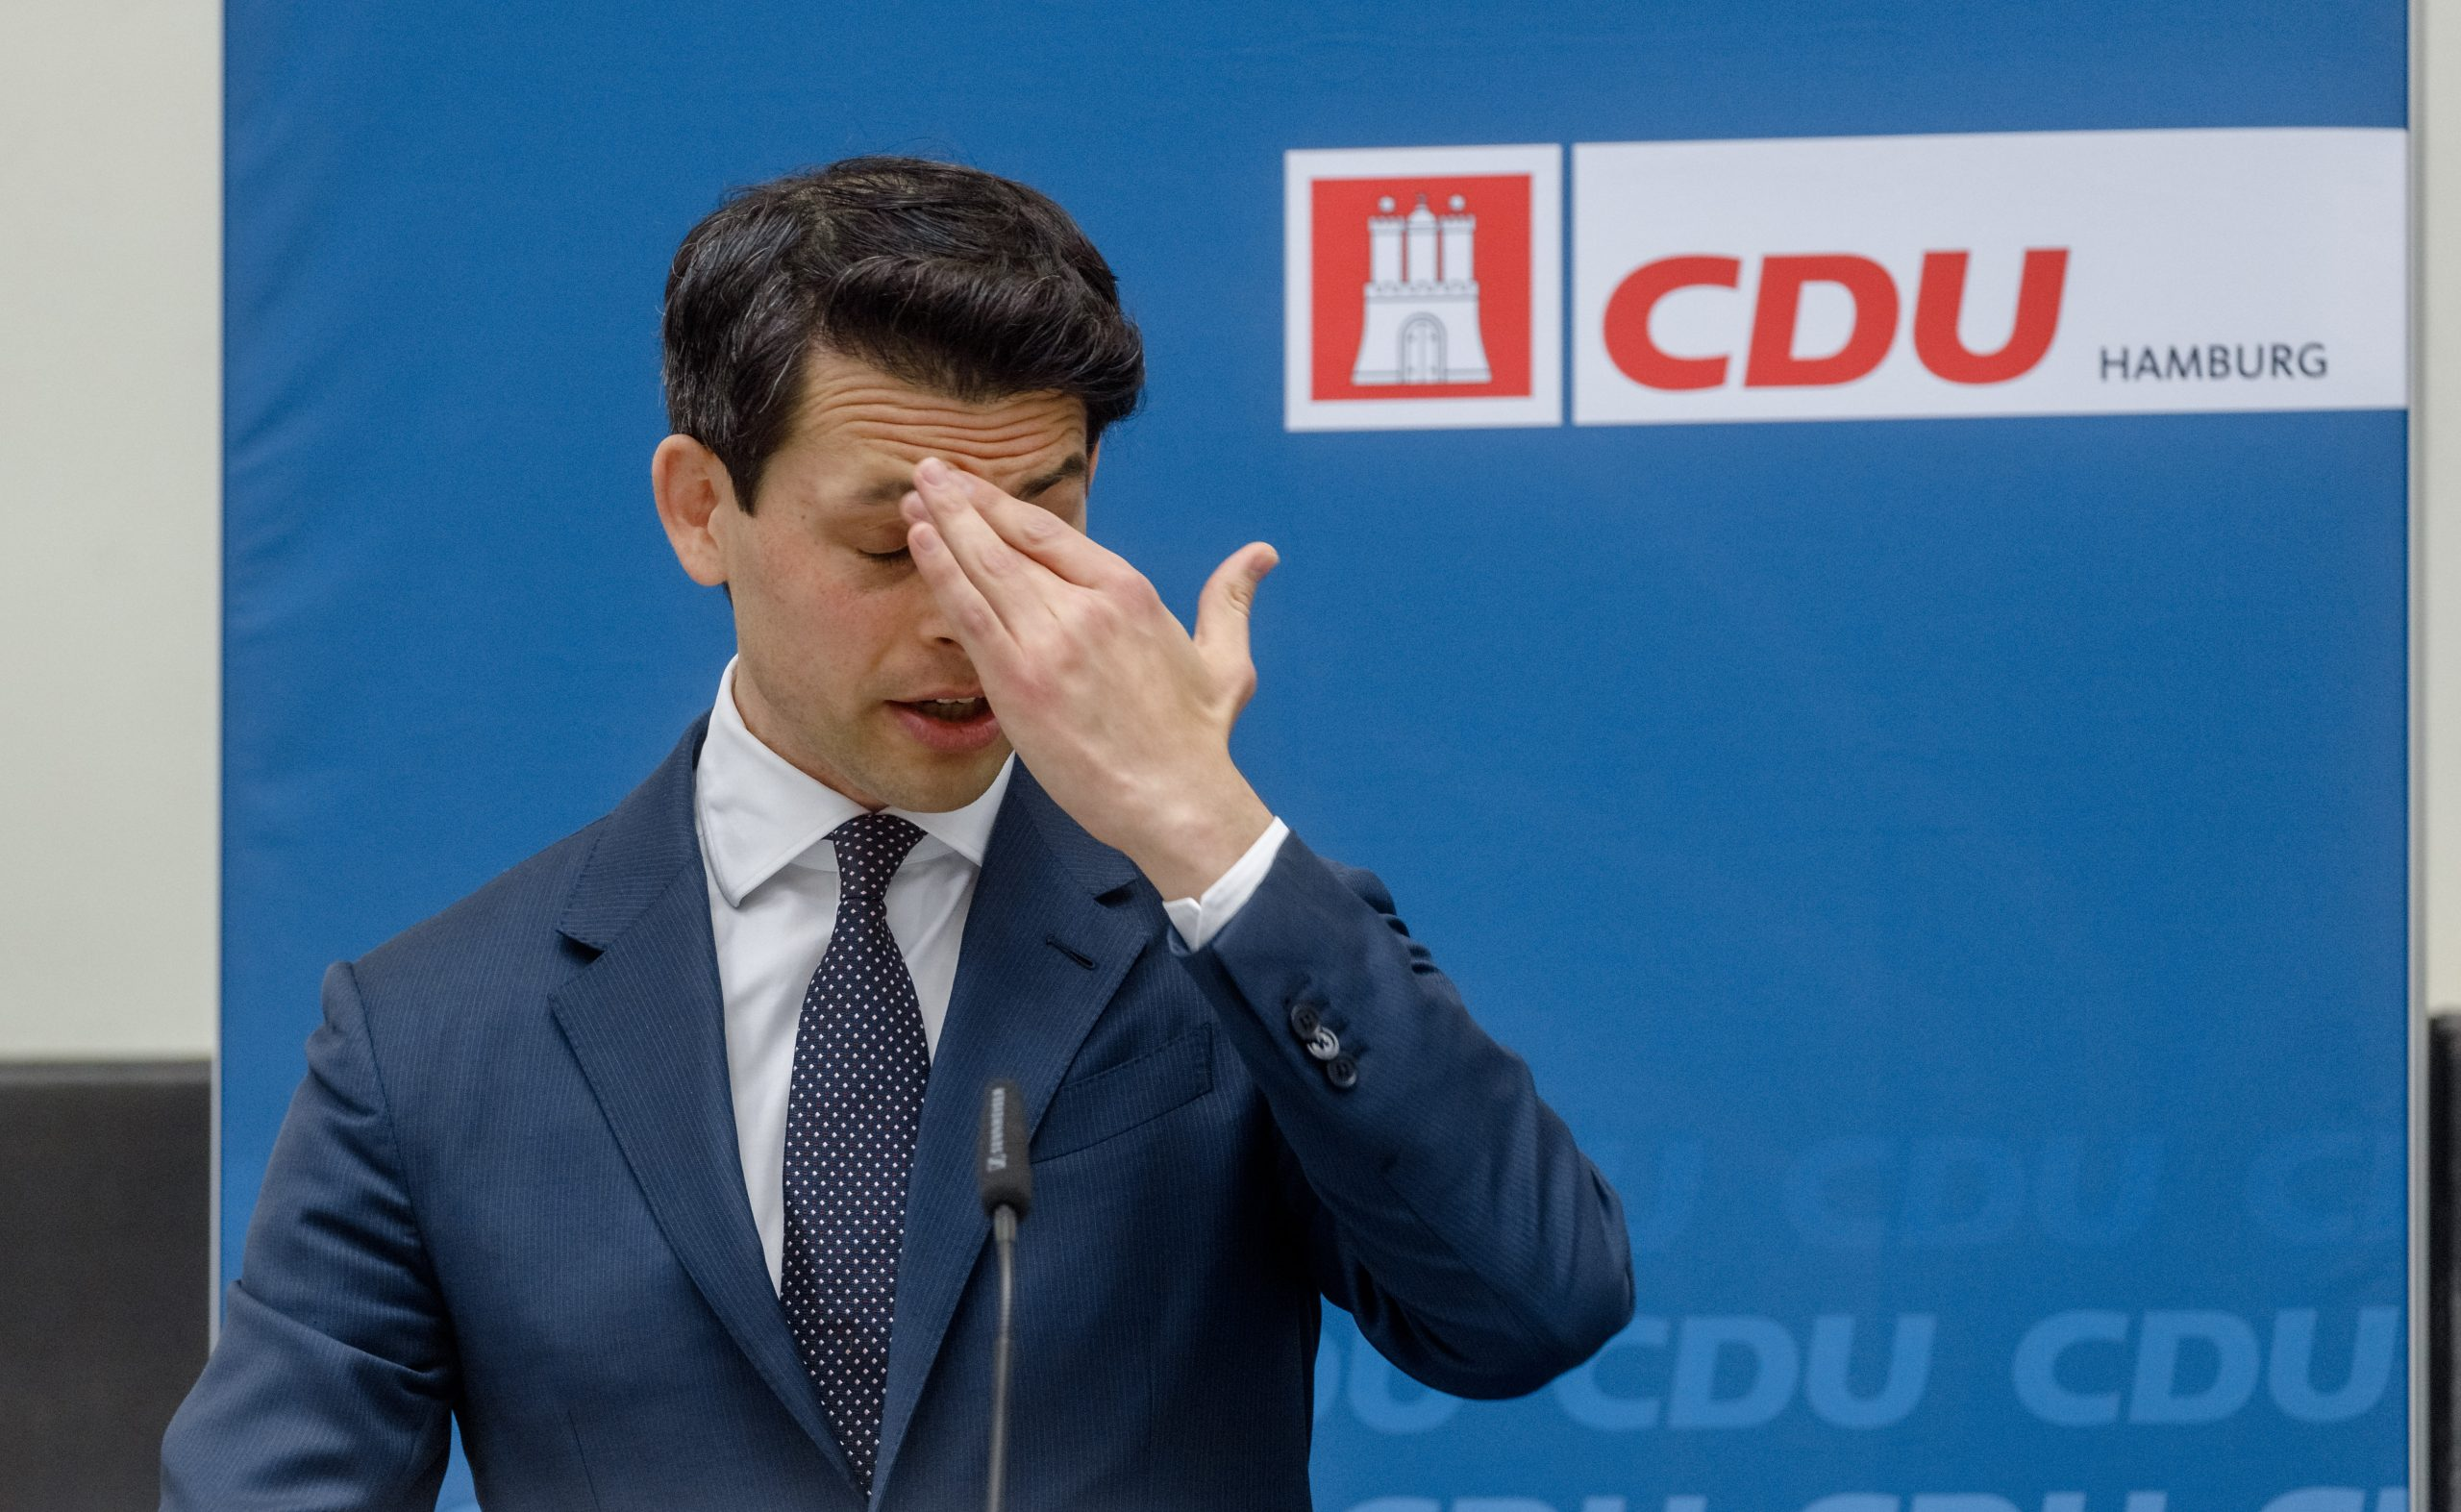 Outsourced: election debacle for Hamburg's CDU boss